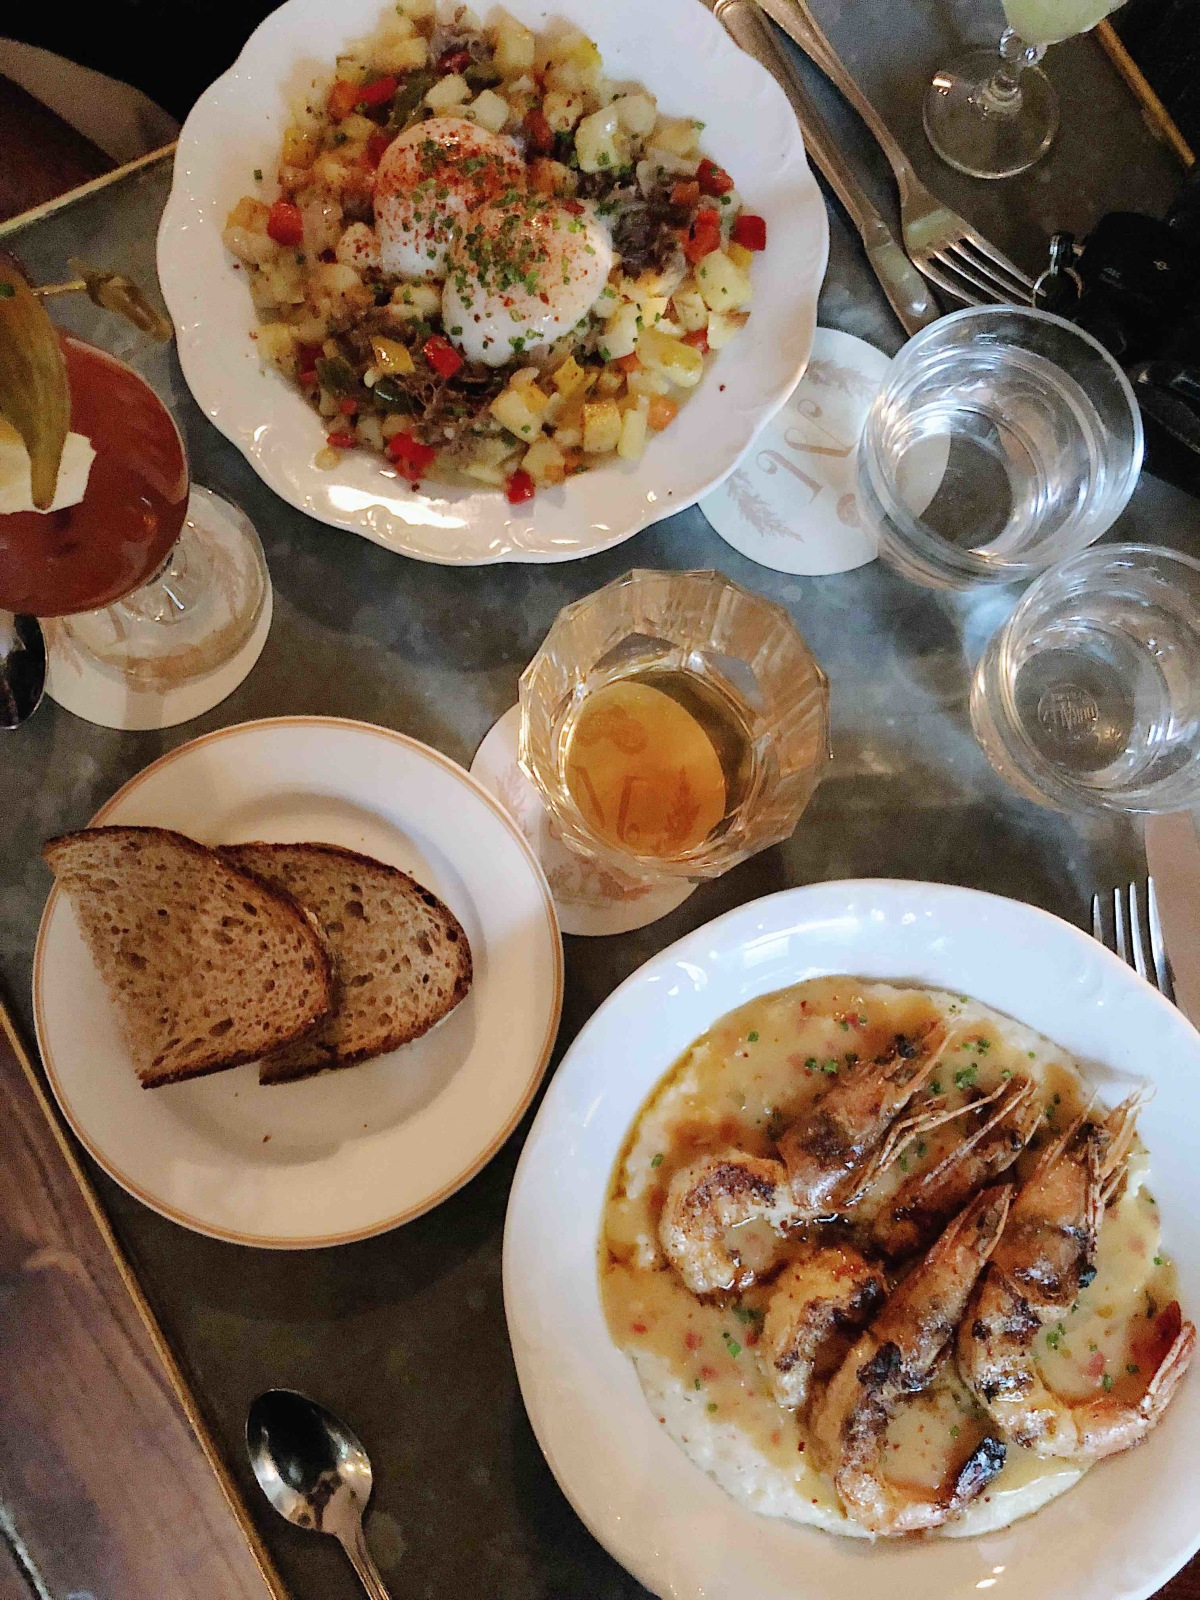 Joe and I love day drinking and brunching  on the weekends. Our go to place is almost always Maison Premiere, the brunch menu is so delicious. Please order the shrimp \x26 grits. Thank me later.